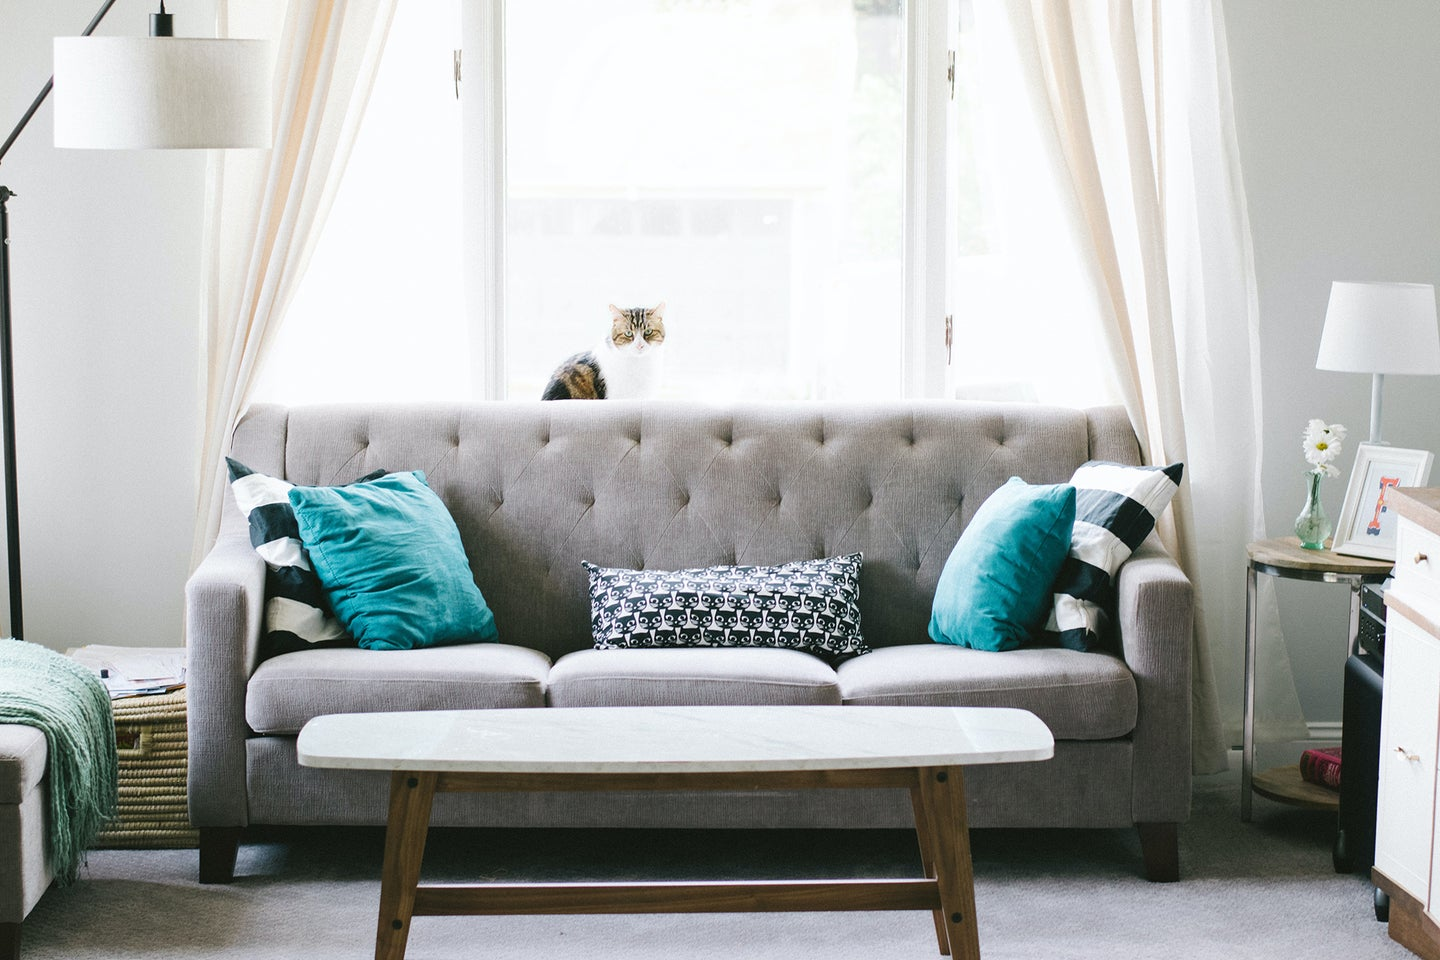 A furnished living room cleaned with the best steam cleaner